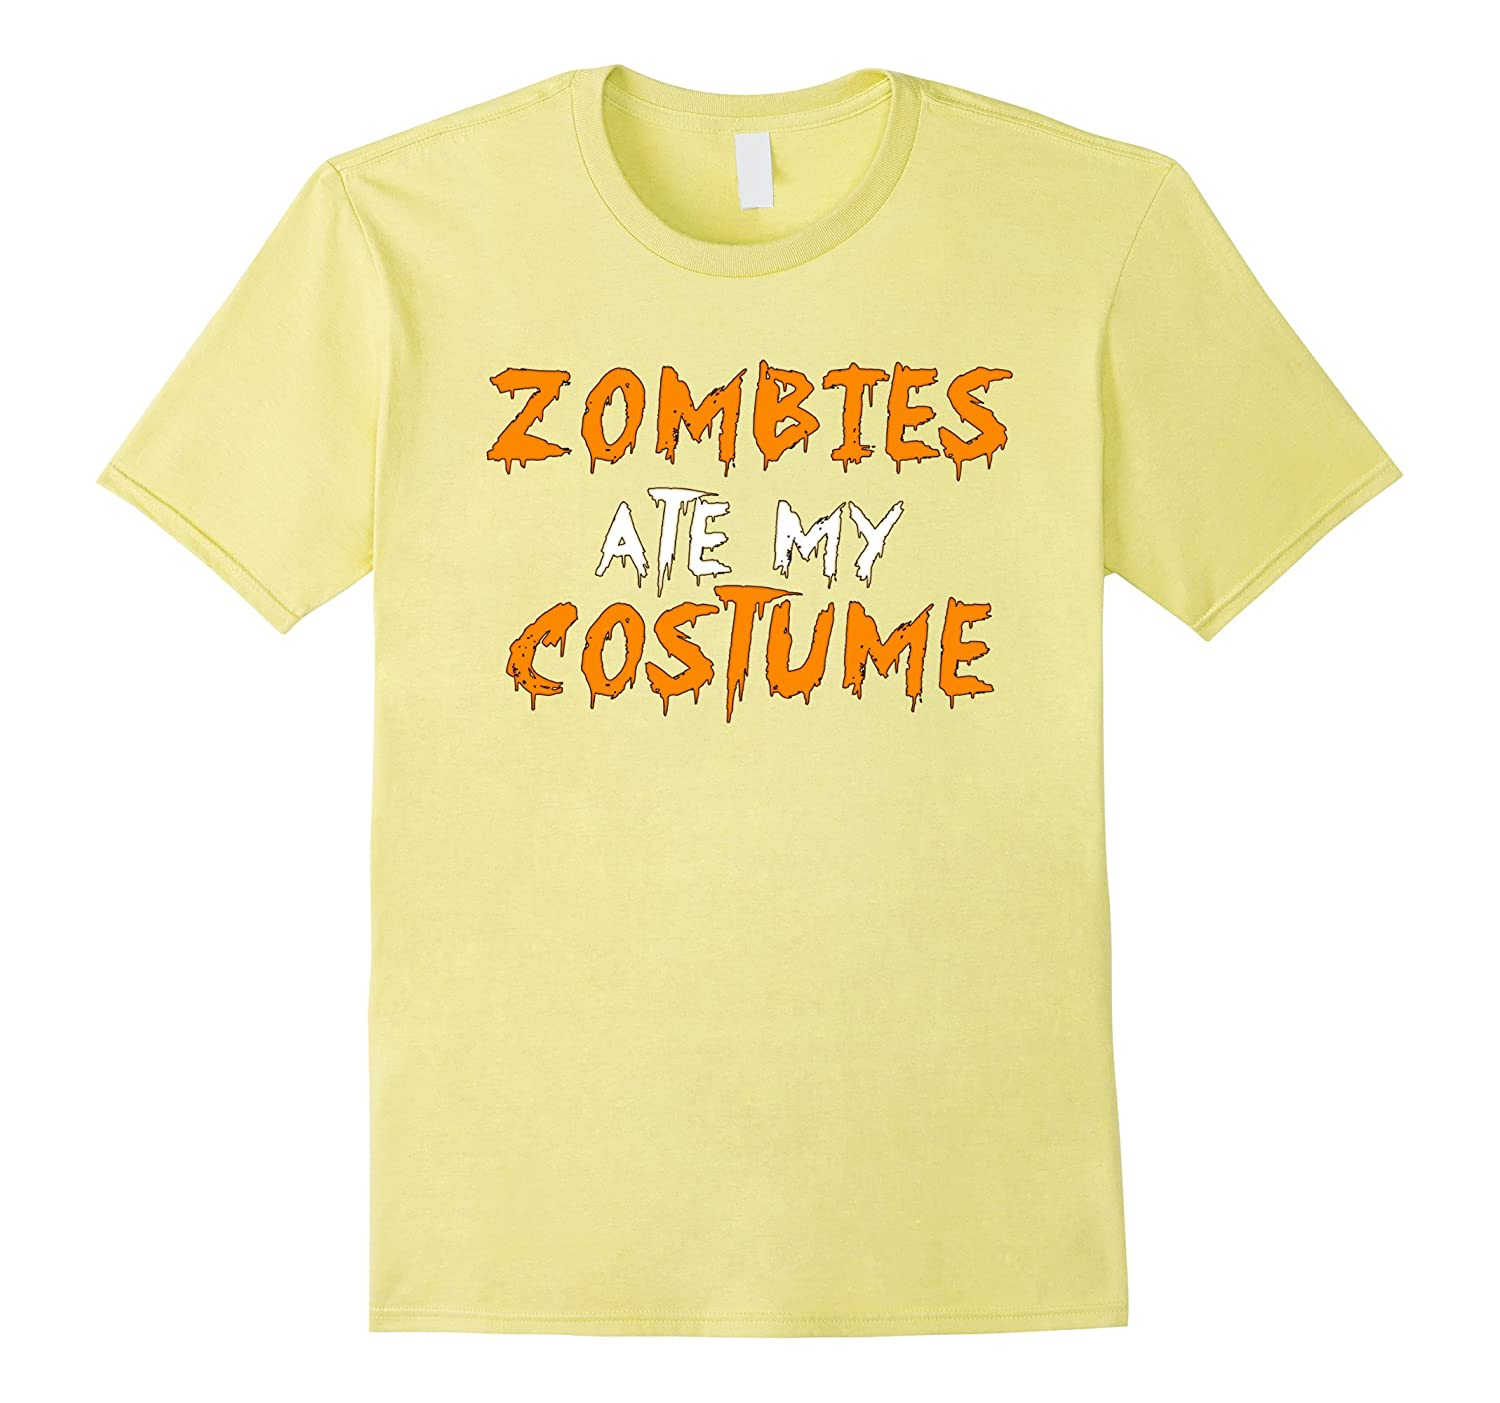 Zombies Ate My Costume T-shirt Halloween tshirt-FL